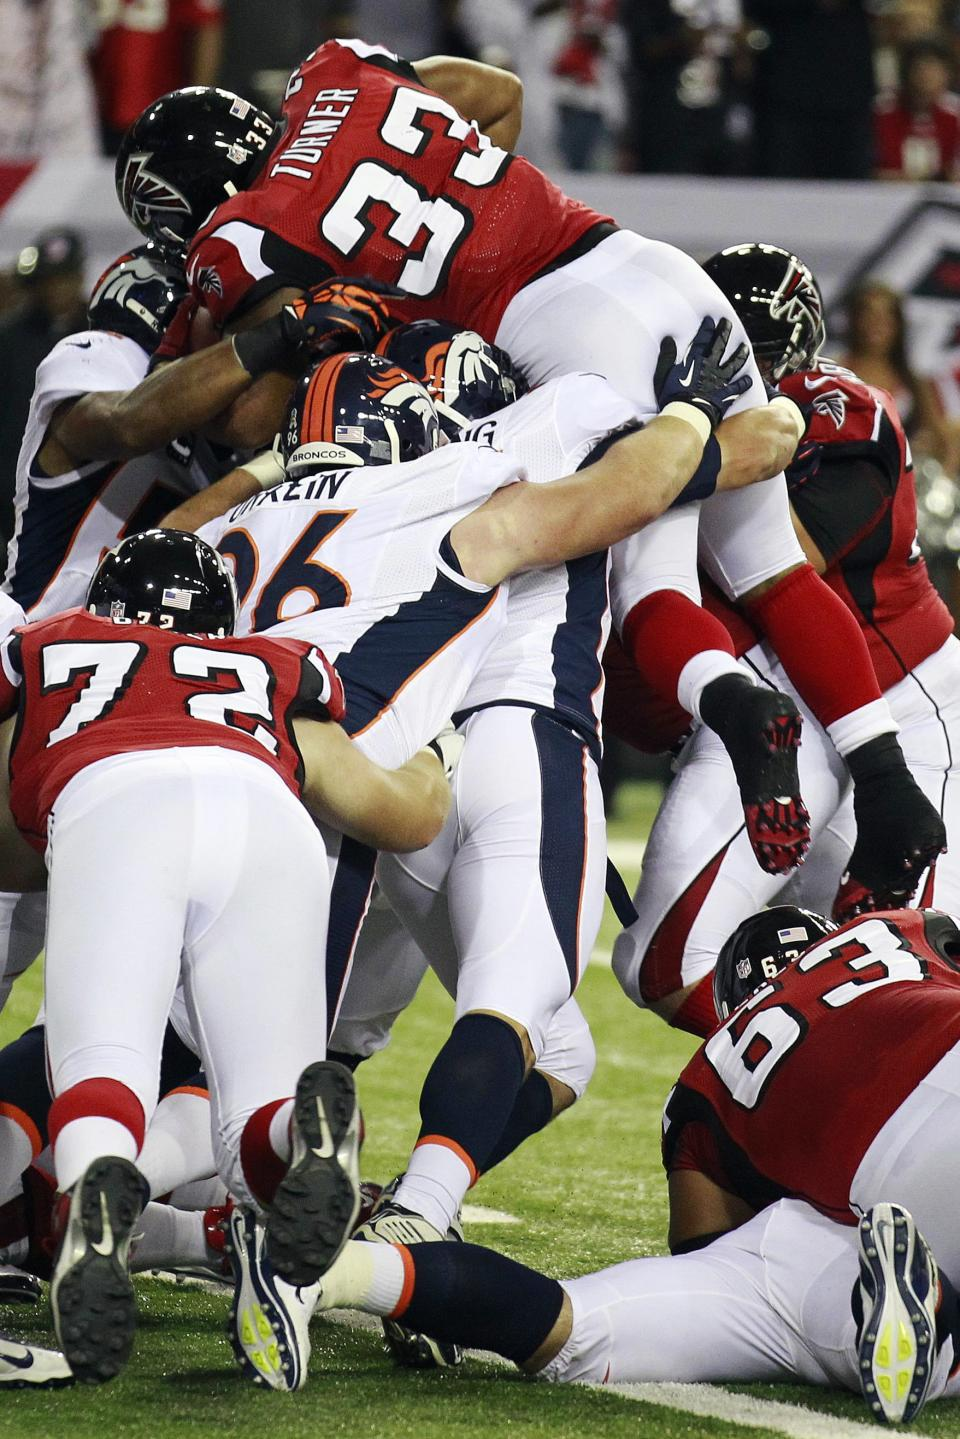 Atlanta Falcons running back Michael Turner (33) dives for a touchdown against the Denver Broncos during the first quarter of an NFL football game, Monday, Sept. 17, 2012, in Atlanta. (AP Photo/John Bazemore)